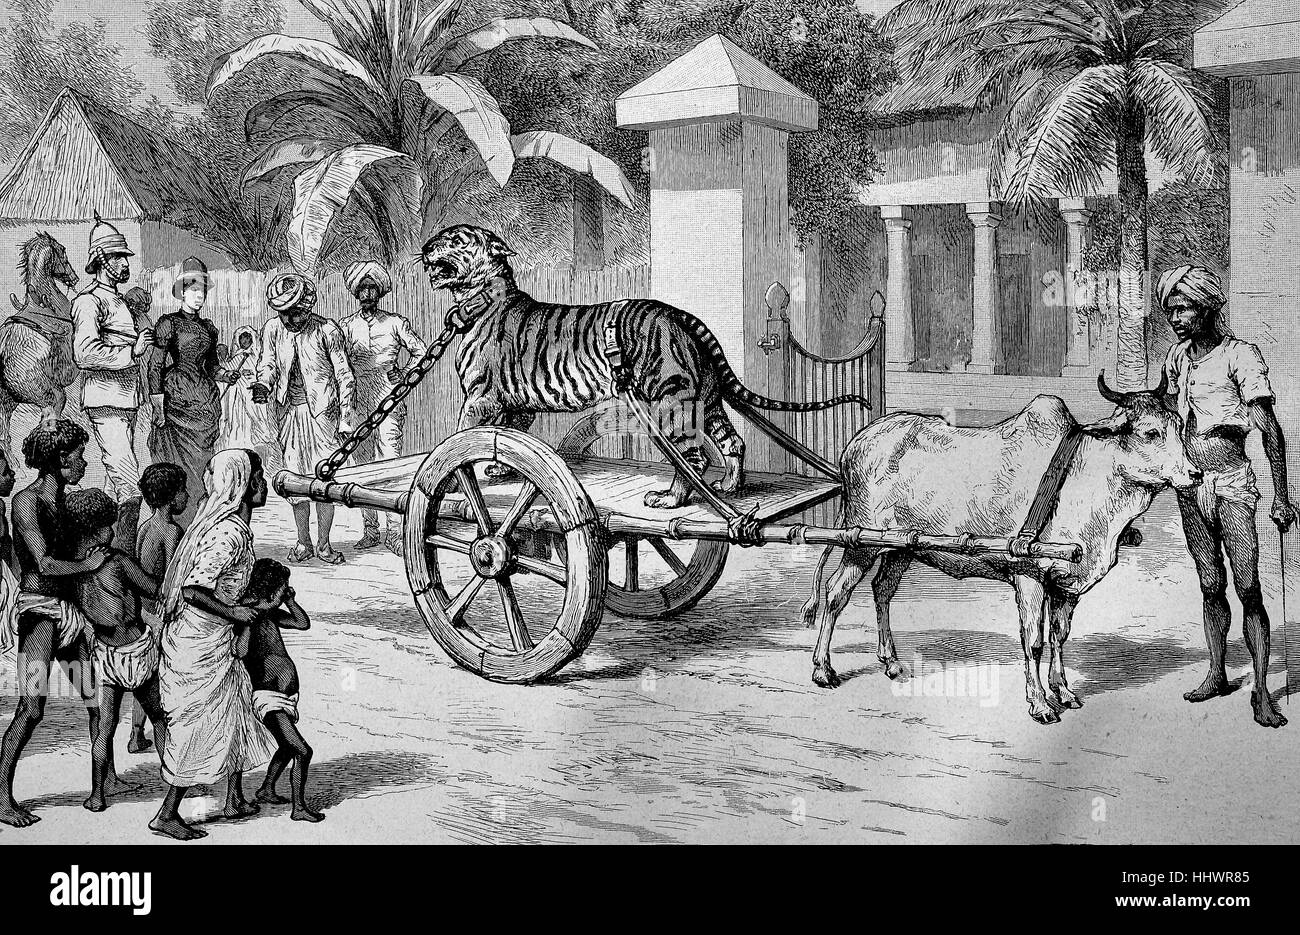 A chained, captured tiger is driven on a car through the road, India, historical image or illustration, published - Stock Image